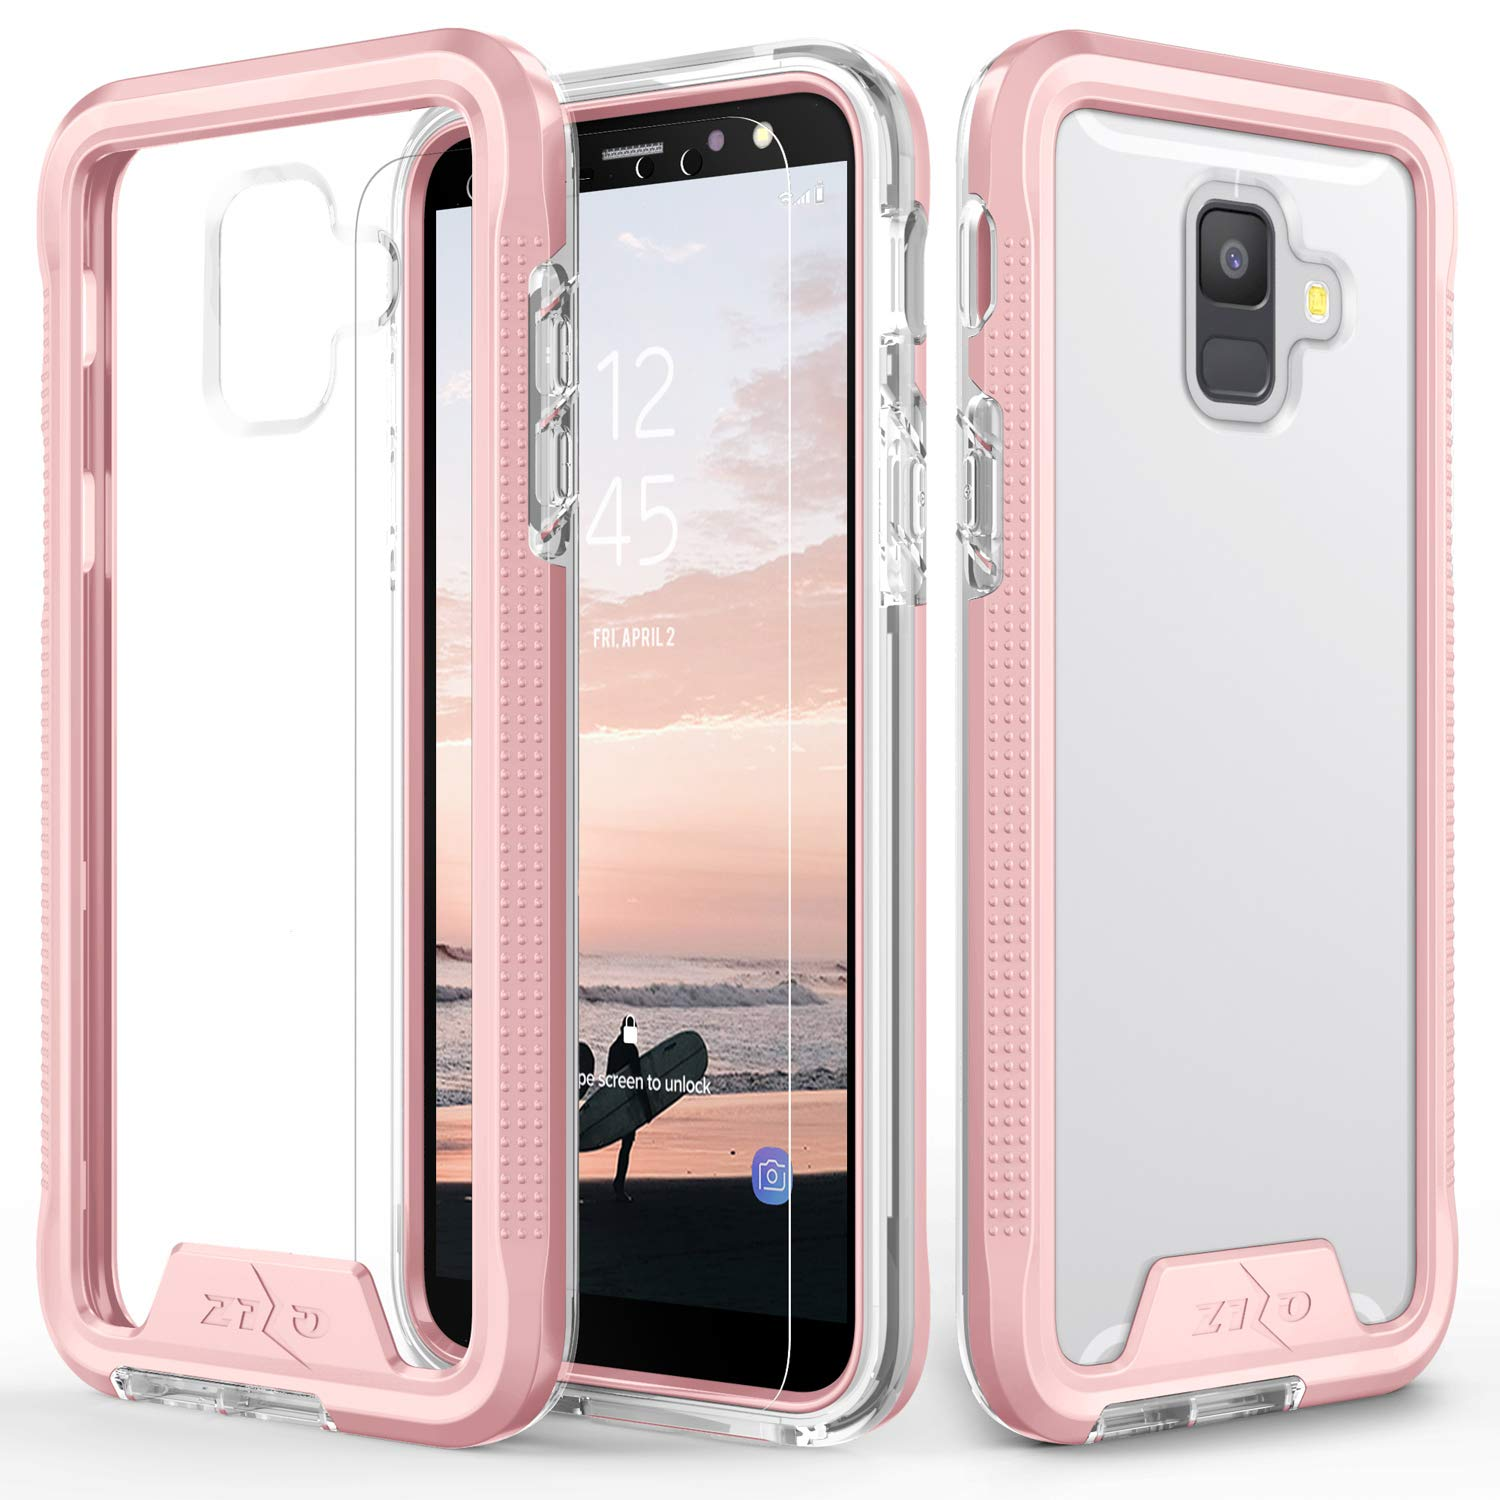 Zizo ION Series Compatible with Samsung Galaxy A6 case Military Grade Drop Tested with Tempered Glass Screen Protector (Rose Gold & Clear) by Zizo